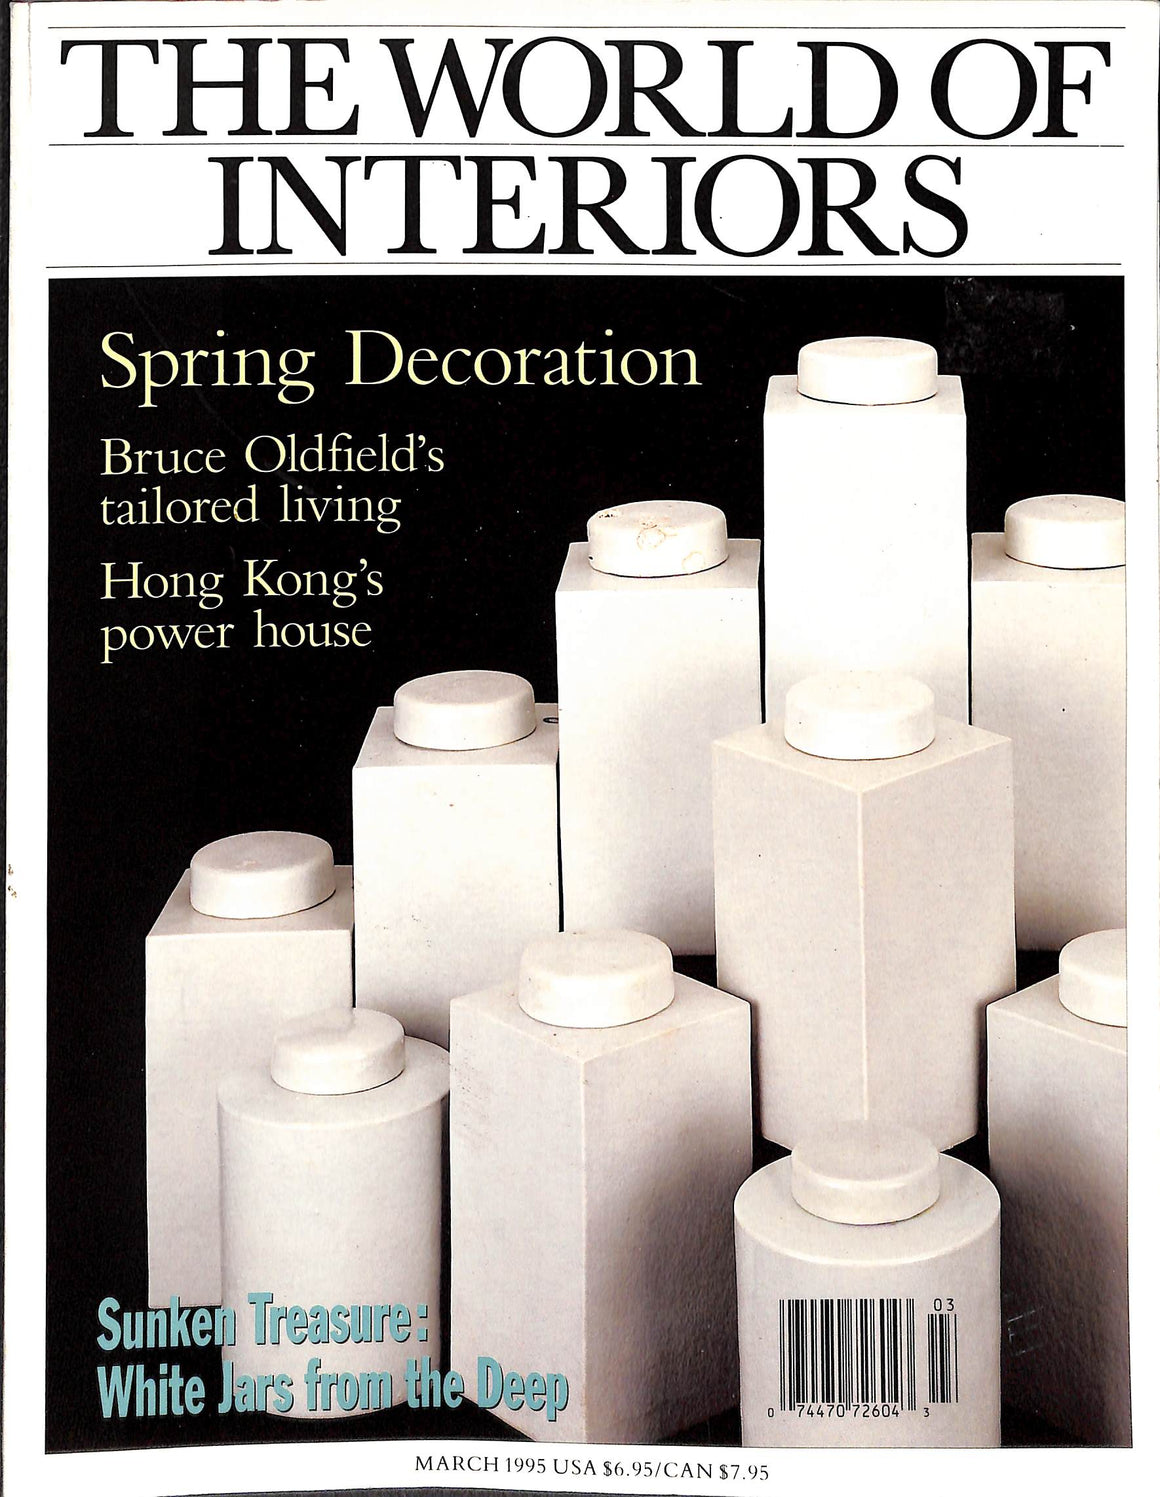 The World of Interiors: March 1995